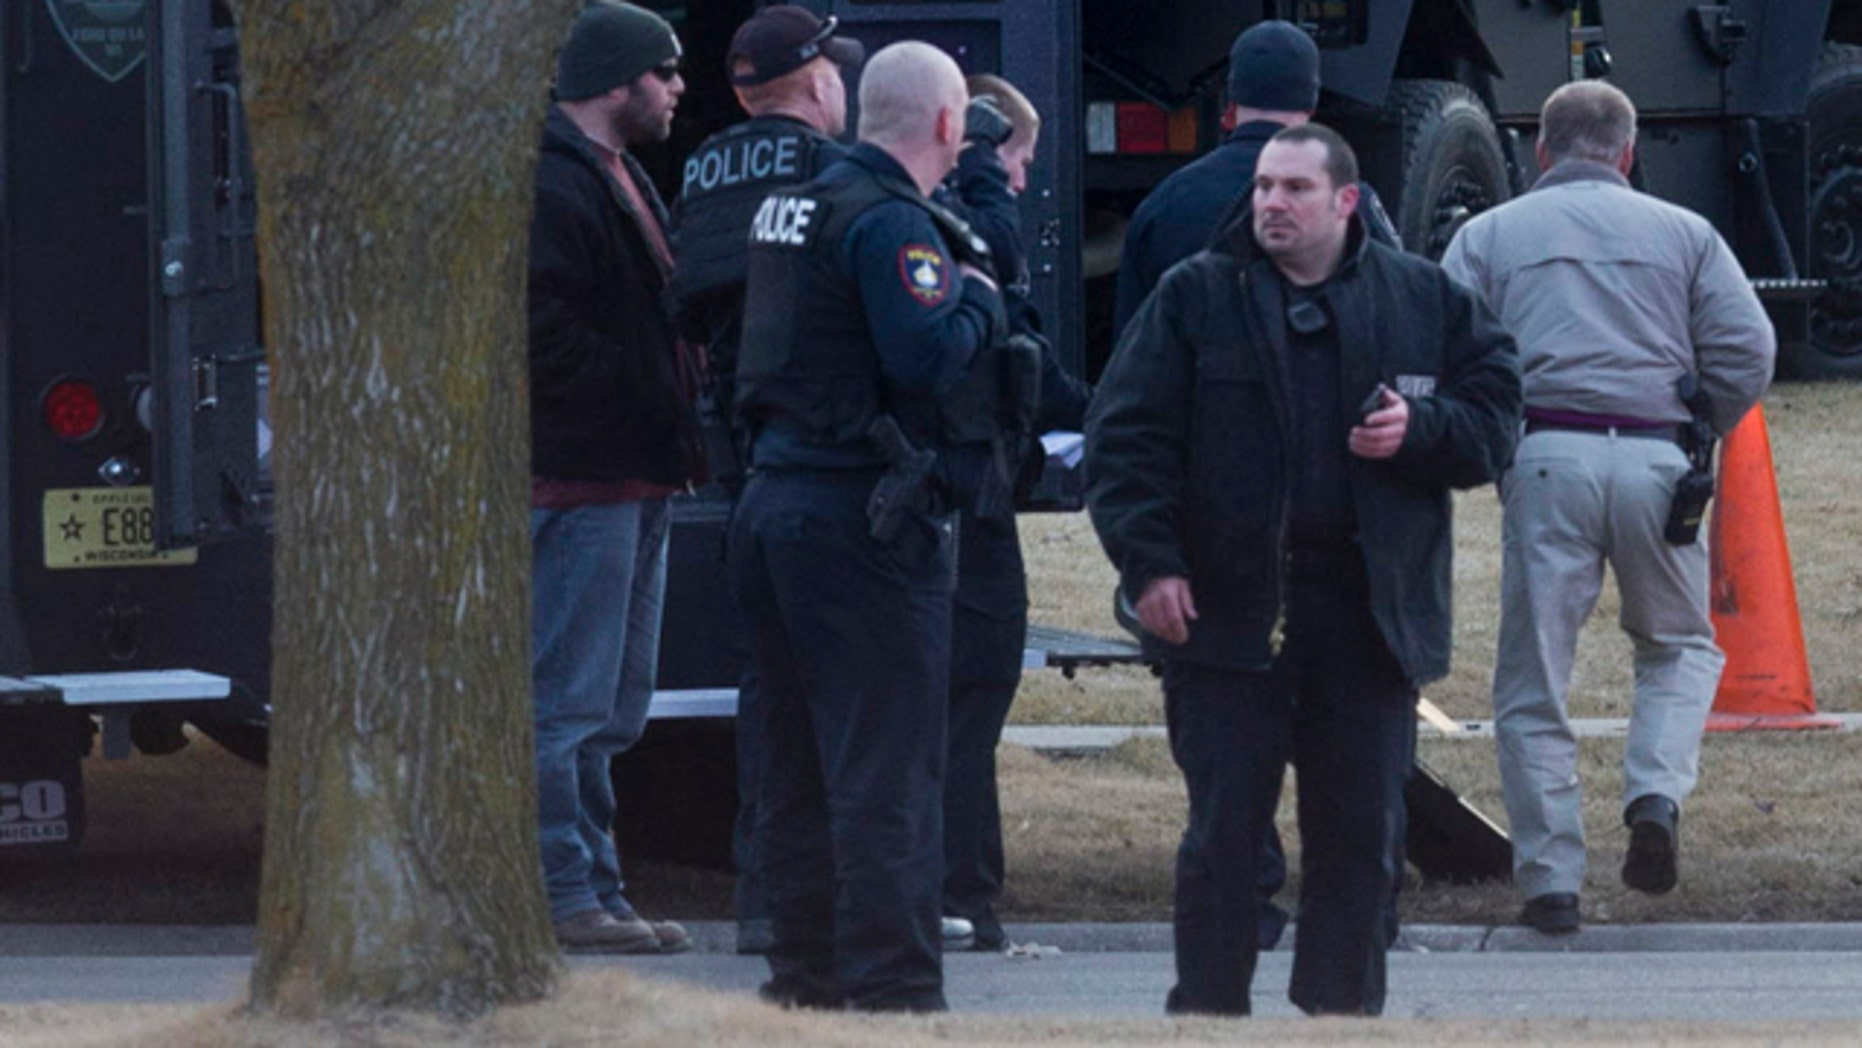 March 24, 2015: Law enforcement personnel gather at the scene of a shooting in Fond du Lac, Wis. Authorities say a Wisconsin state trooper was shot and killed in an exchange of gunfire with a person who matched the description of a bank robbery suspect. Police said the suspect also was killed. (AP Photo/Milwaukee Journal-Sentinel, Mark Hoffman)